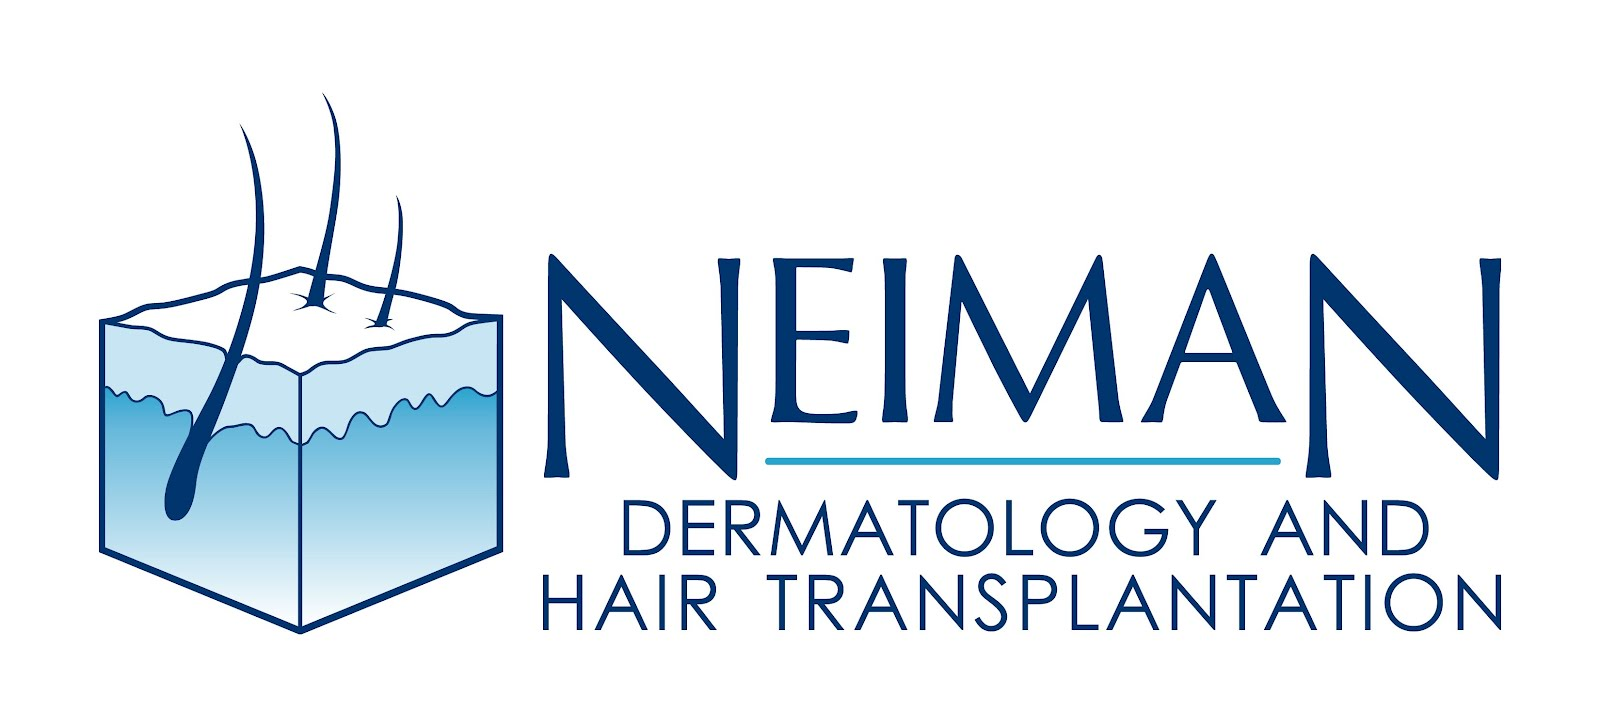 Neiman Dermatology and Hair Transplantation